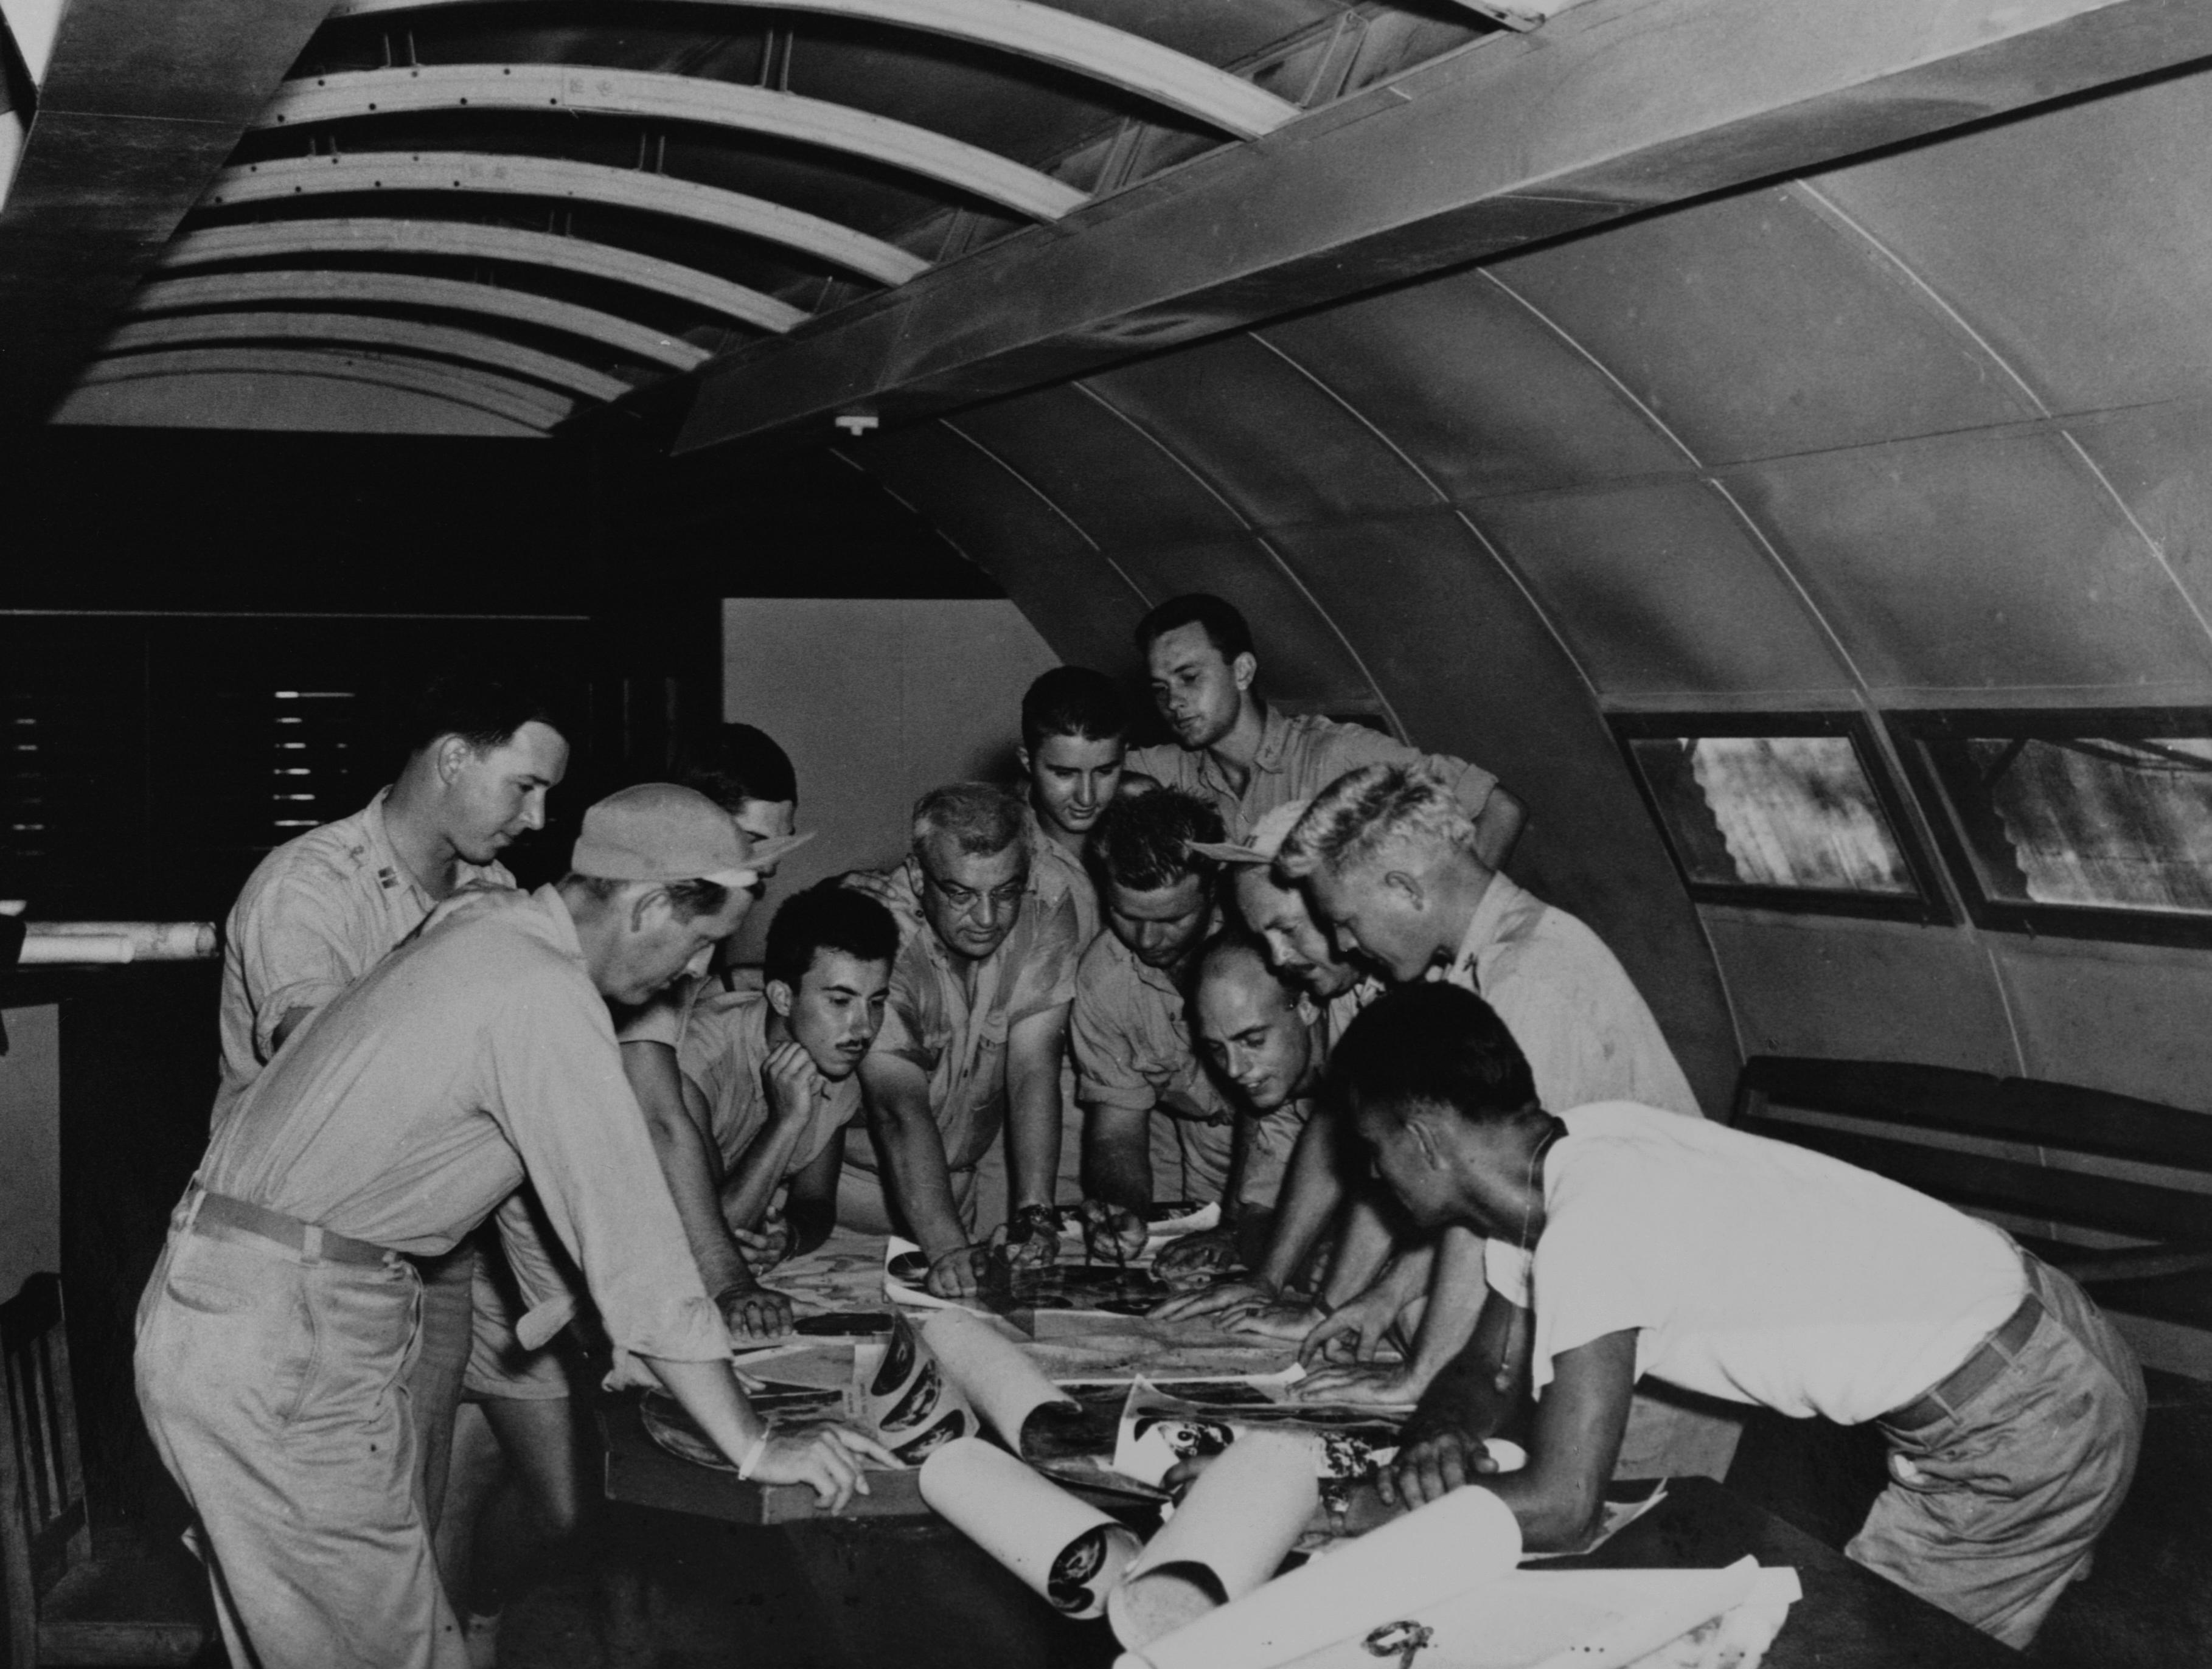 <p>The flight crews of two planes go over planes for the dropping of the first atomic bombs. The middle-aged man in the center is Lt. Col. Payette. On the left, in the foreground in profile is Lt. Ralph Devore. The man looking over Payette's shoulder is Major Chuck Sweeney. Sweeney commanded and Devore flew with the mission to drop the second bomb on Nagasaki. To the right in profile are Lts. Thomas Ferebee (in cap, with mustache) and Morris Jeppson, both of whom flew with the first mission to bomb Hiroshima. (Photo: Corbis via Getty Images) </p>